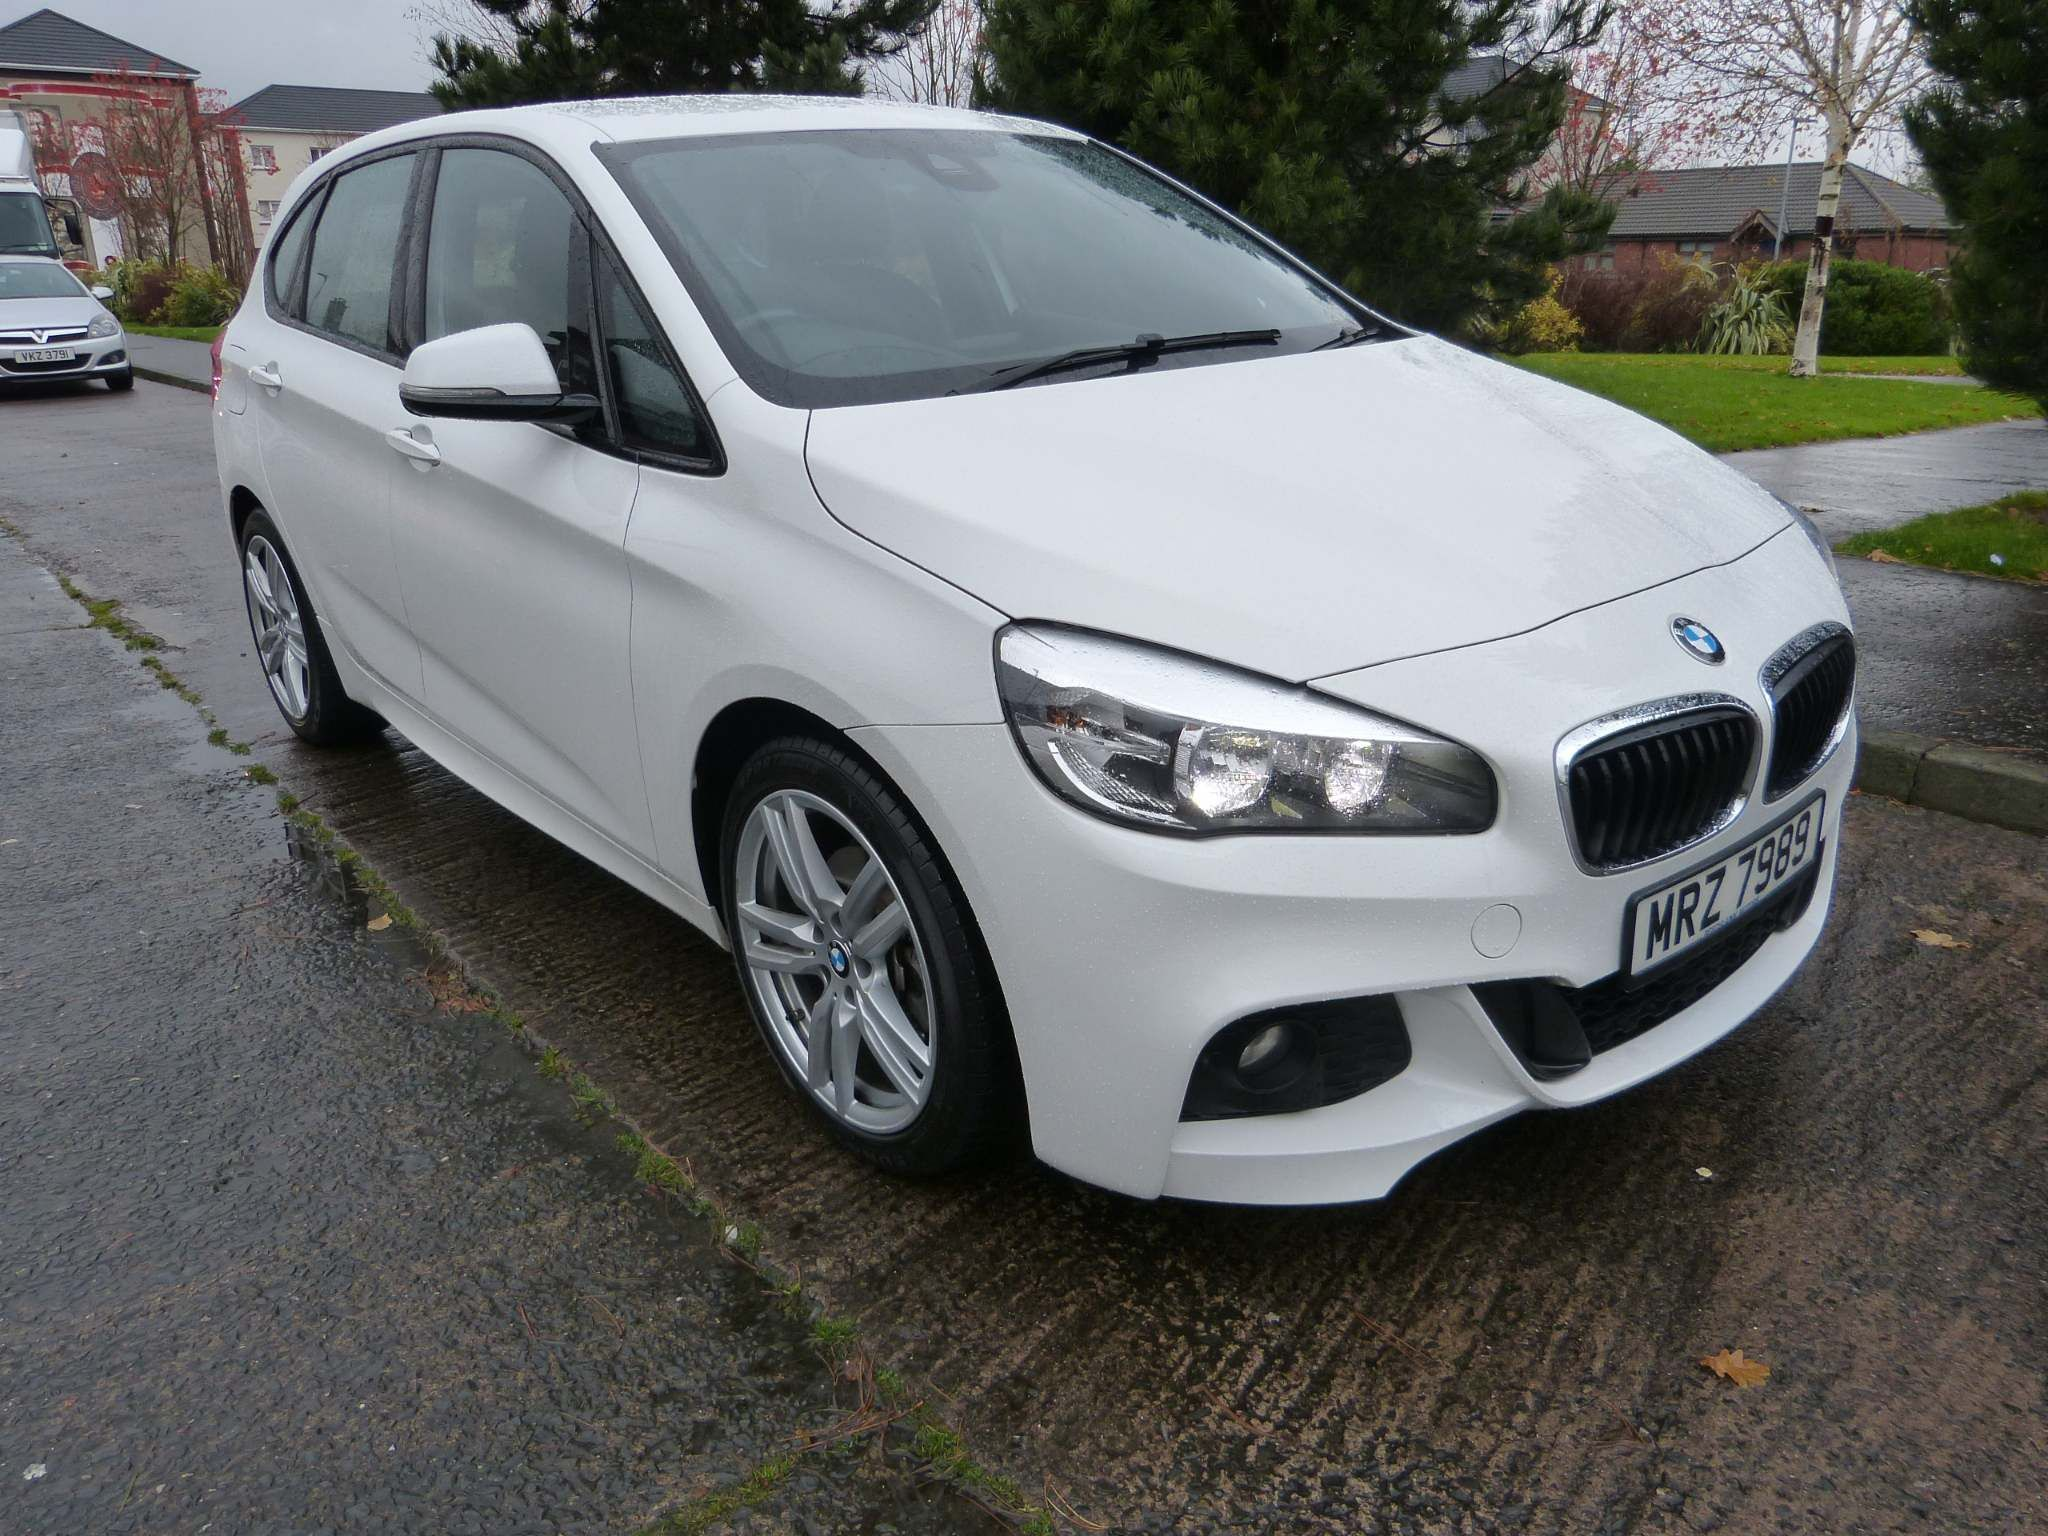 2016 BMW 2 Series Active Tourer 1.5 216d M Sport Active Tourer (s/s) Diesel Manual low milage – Beechlawn Motors Belfast